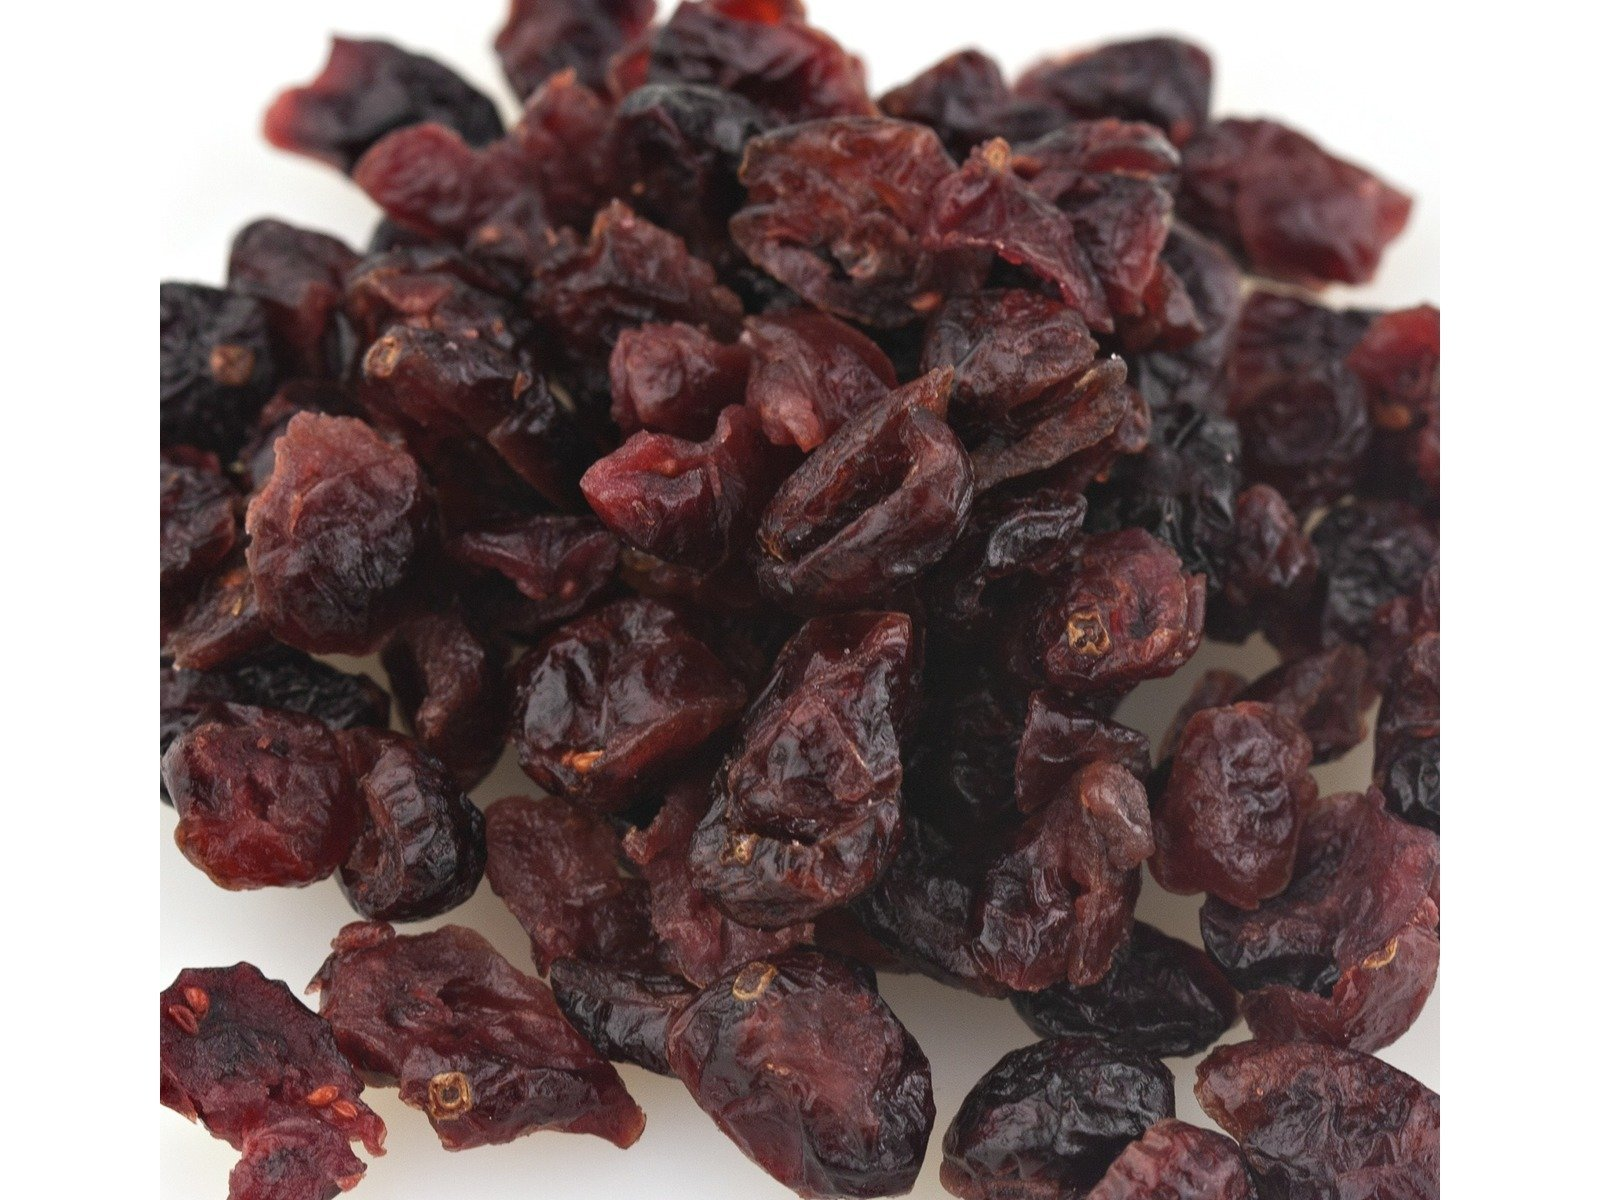 Cranberries Organic 25 lbs. [Pack of 3] by Dried Fruit (Image #1)